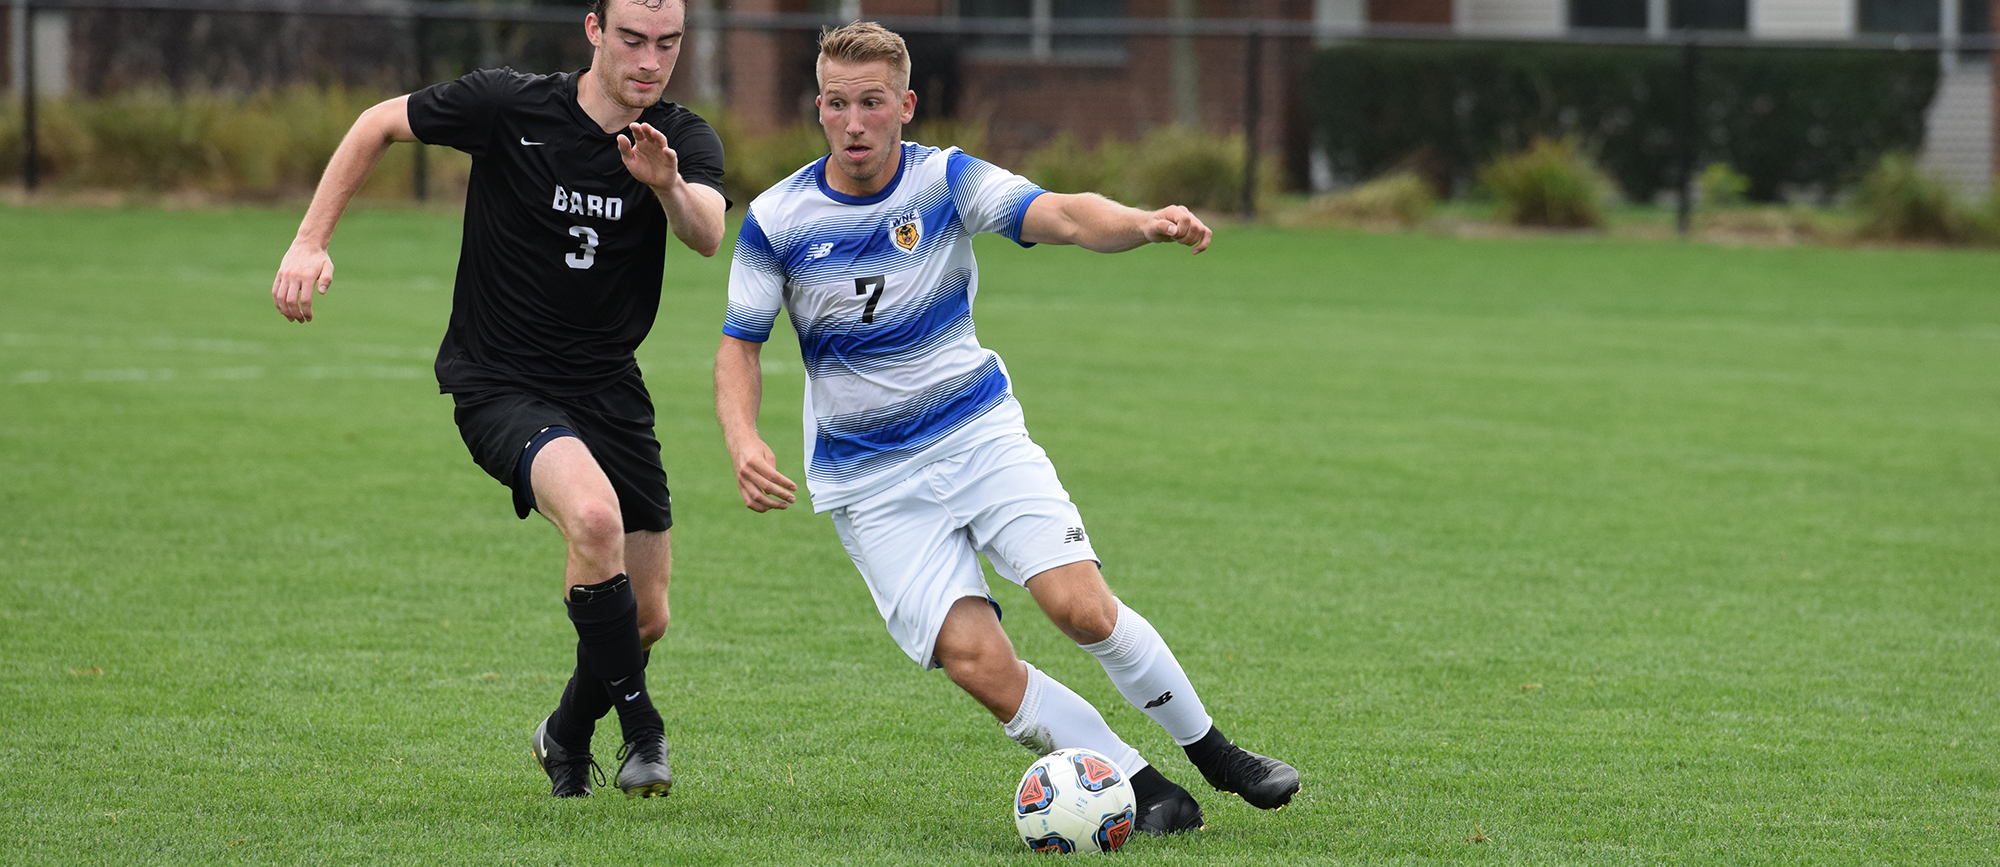 Senior Nick Liccardi scored his first goal of the season in Western New England's 3-1 loss to Bridgewater State on Friday. (Photo by Rachael Margossian)